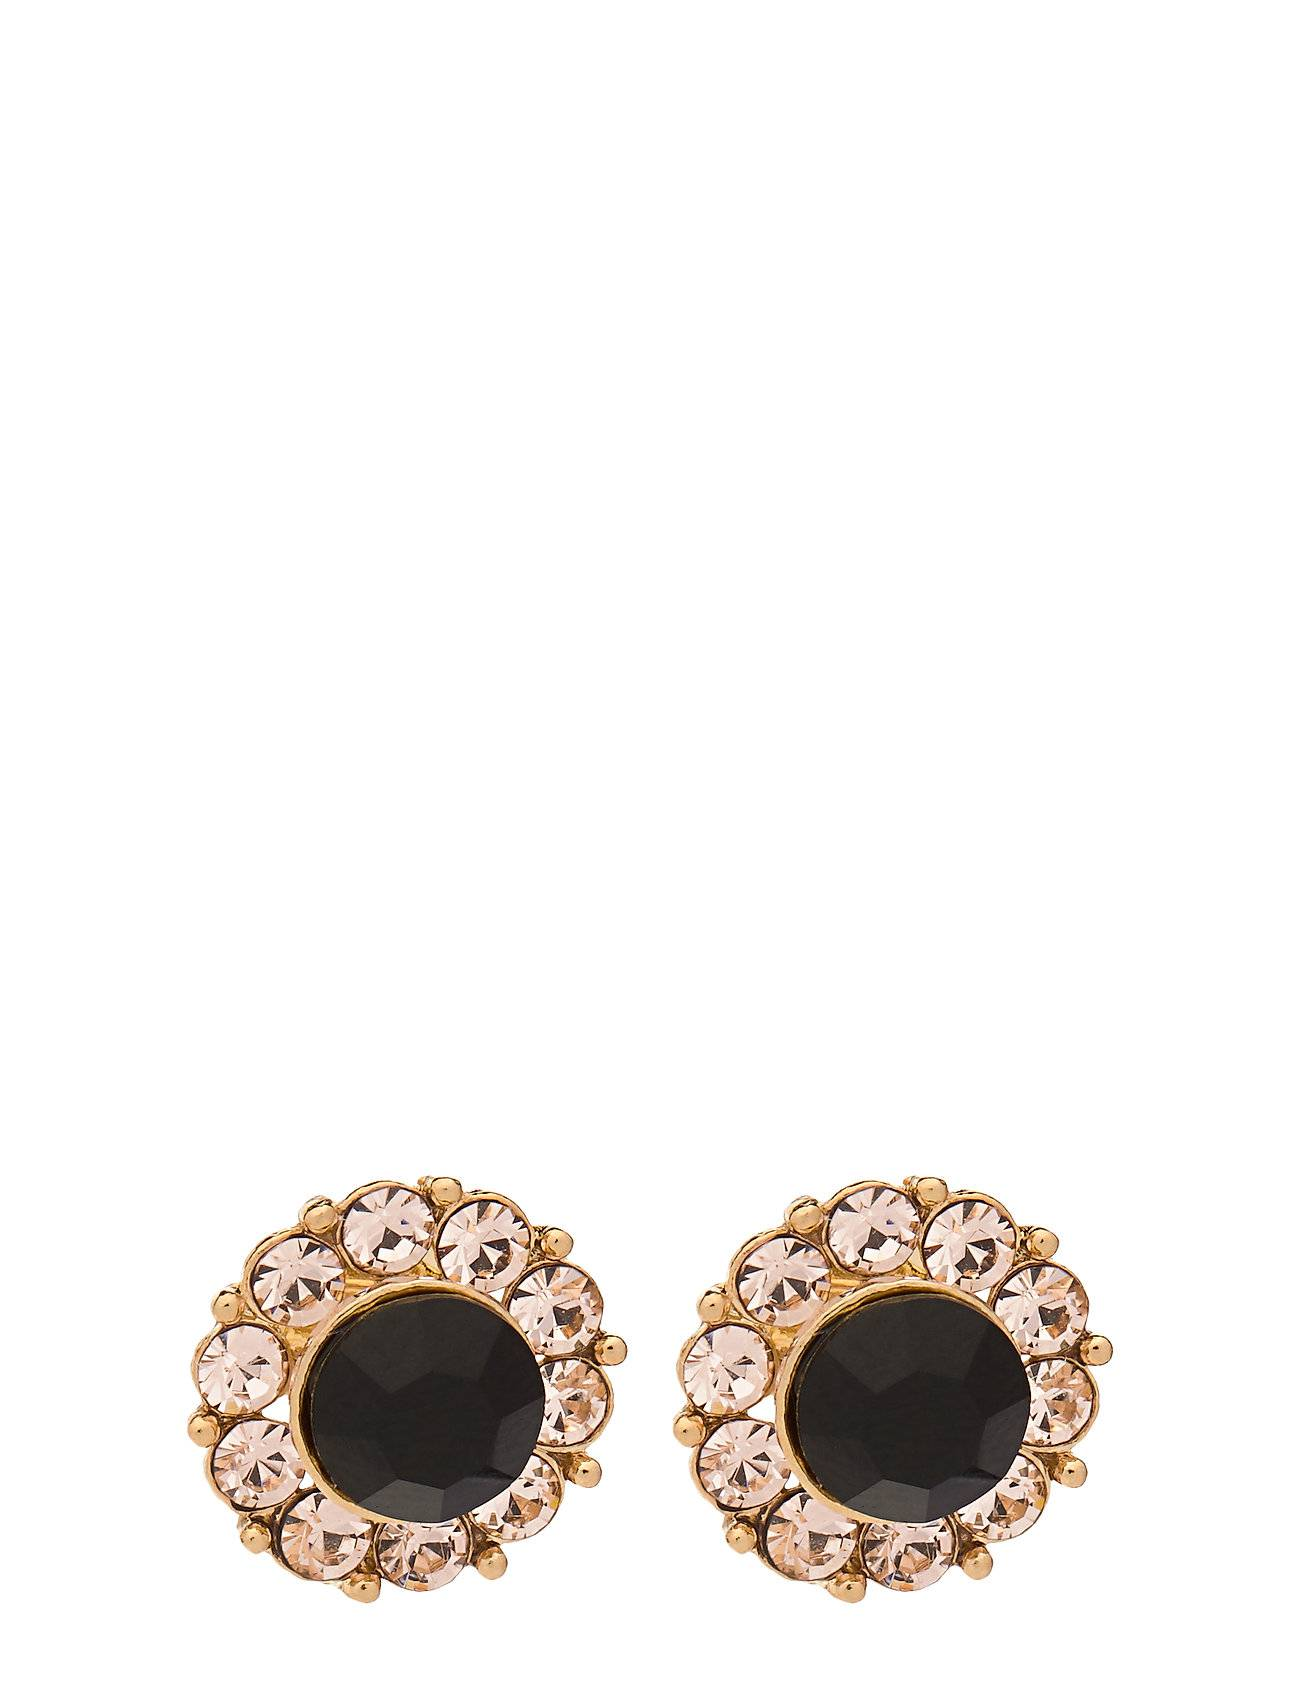 LILY AND ROSE Miss Sofia Earrings - Jet Accessories Jewellery Earrings Studs Kulta LILY AND ROSE